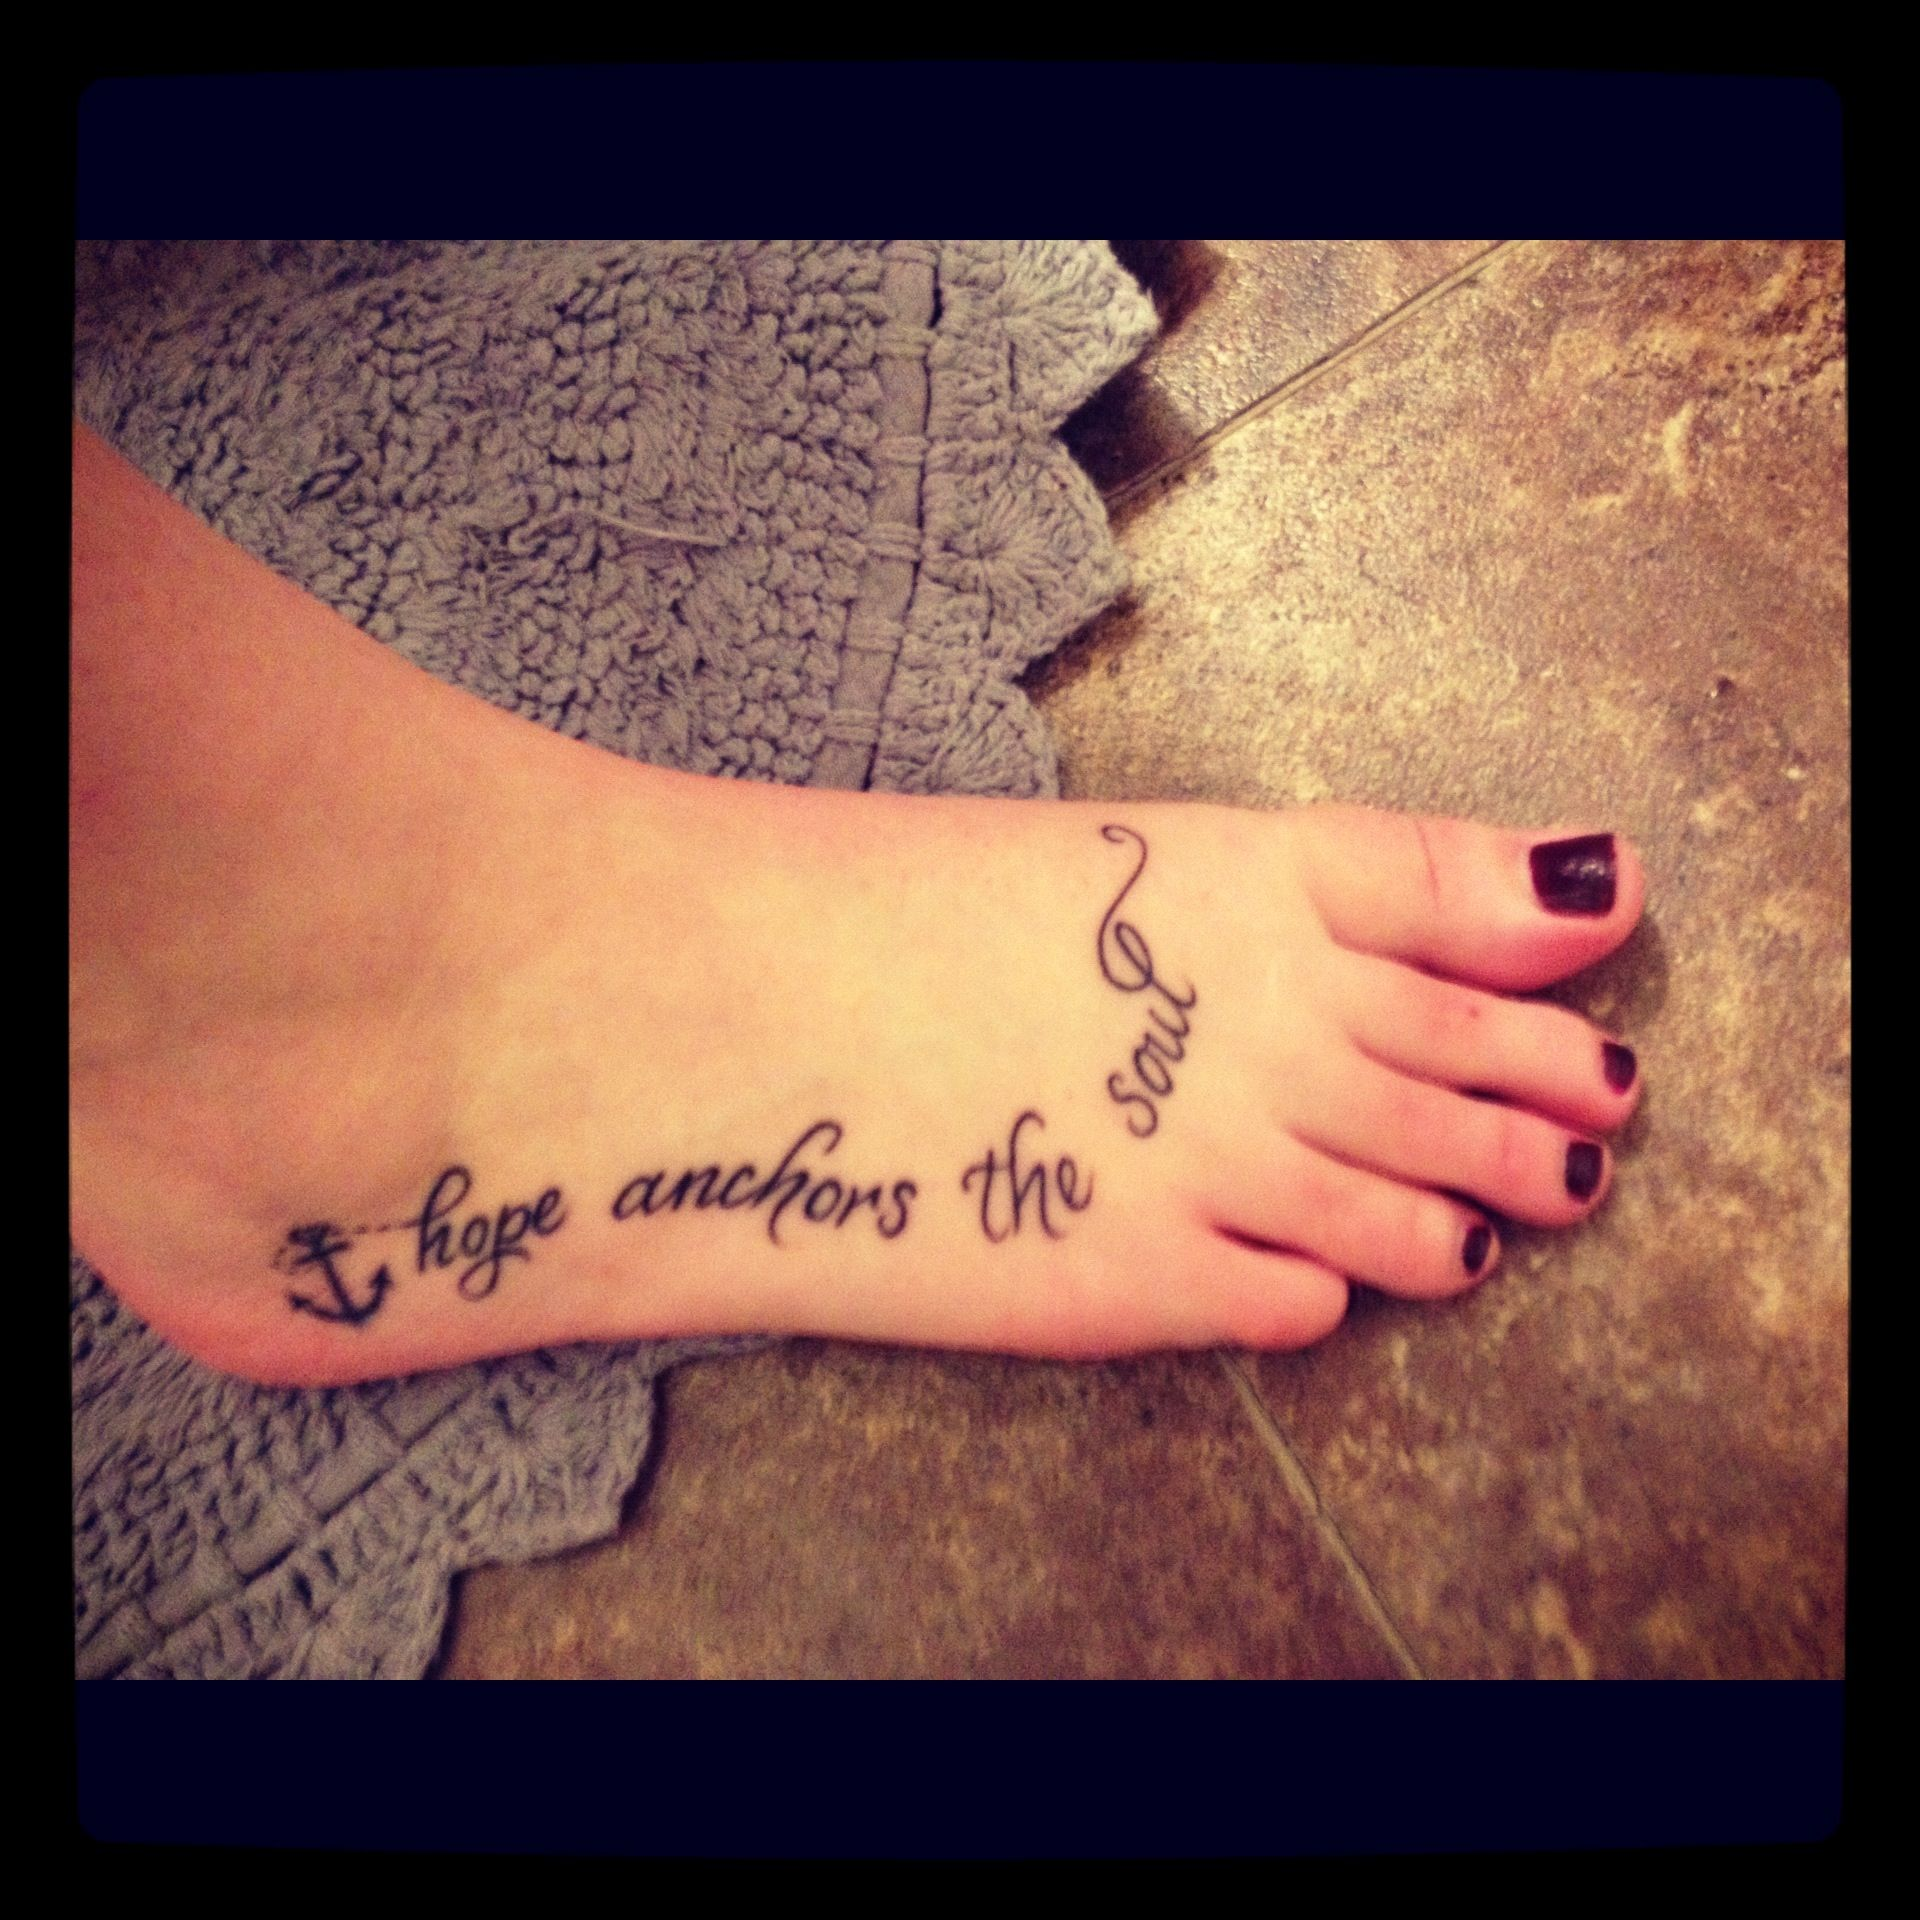 Hope Anchors The Soul Actually Really Like This Tattoo Tattoos Hope Tattoo Sleeve Tattoos For Women